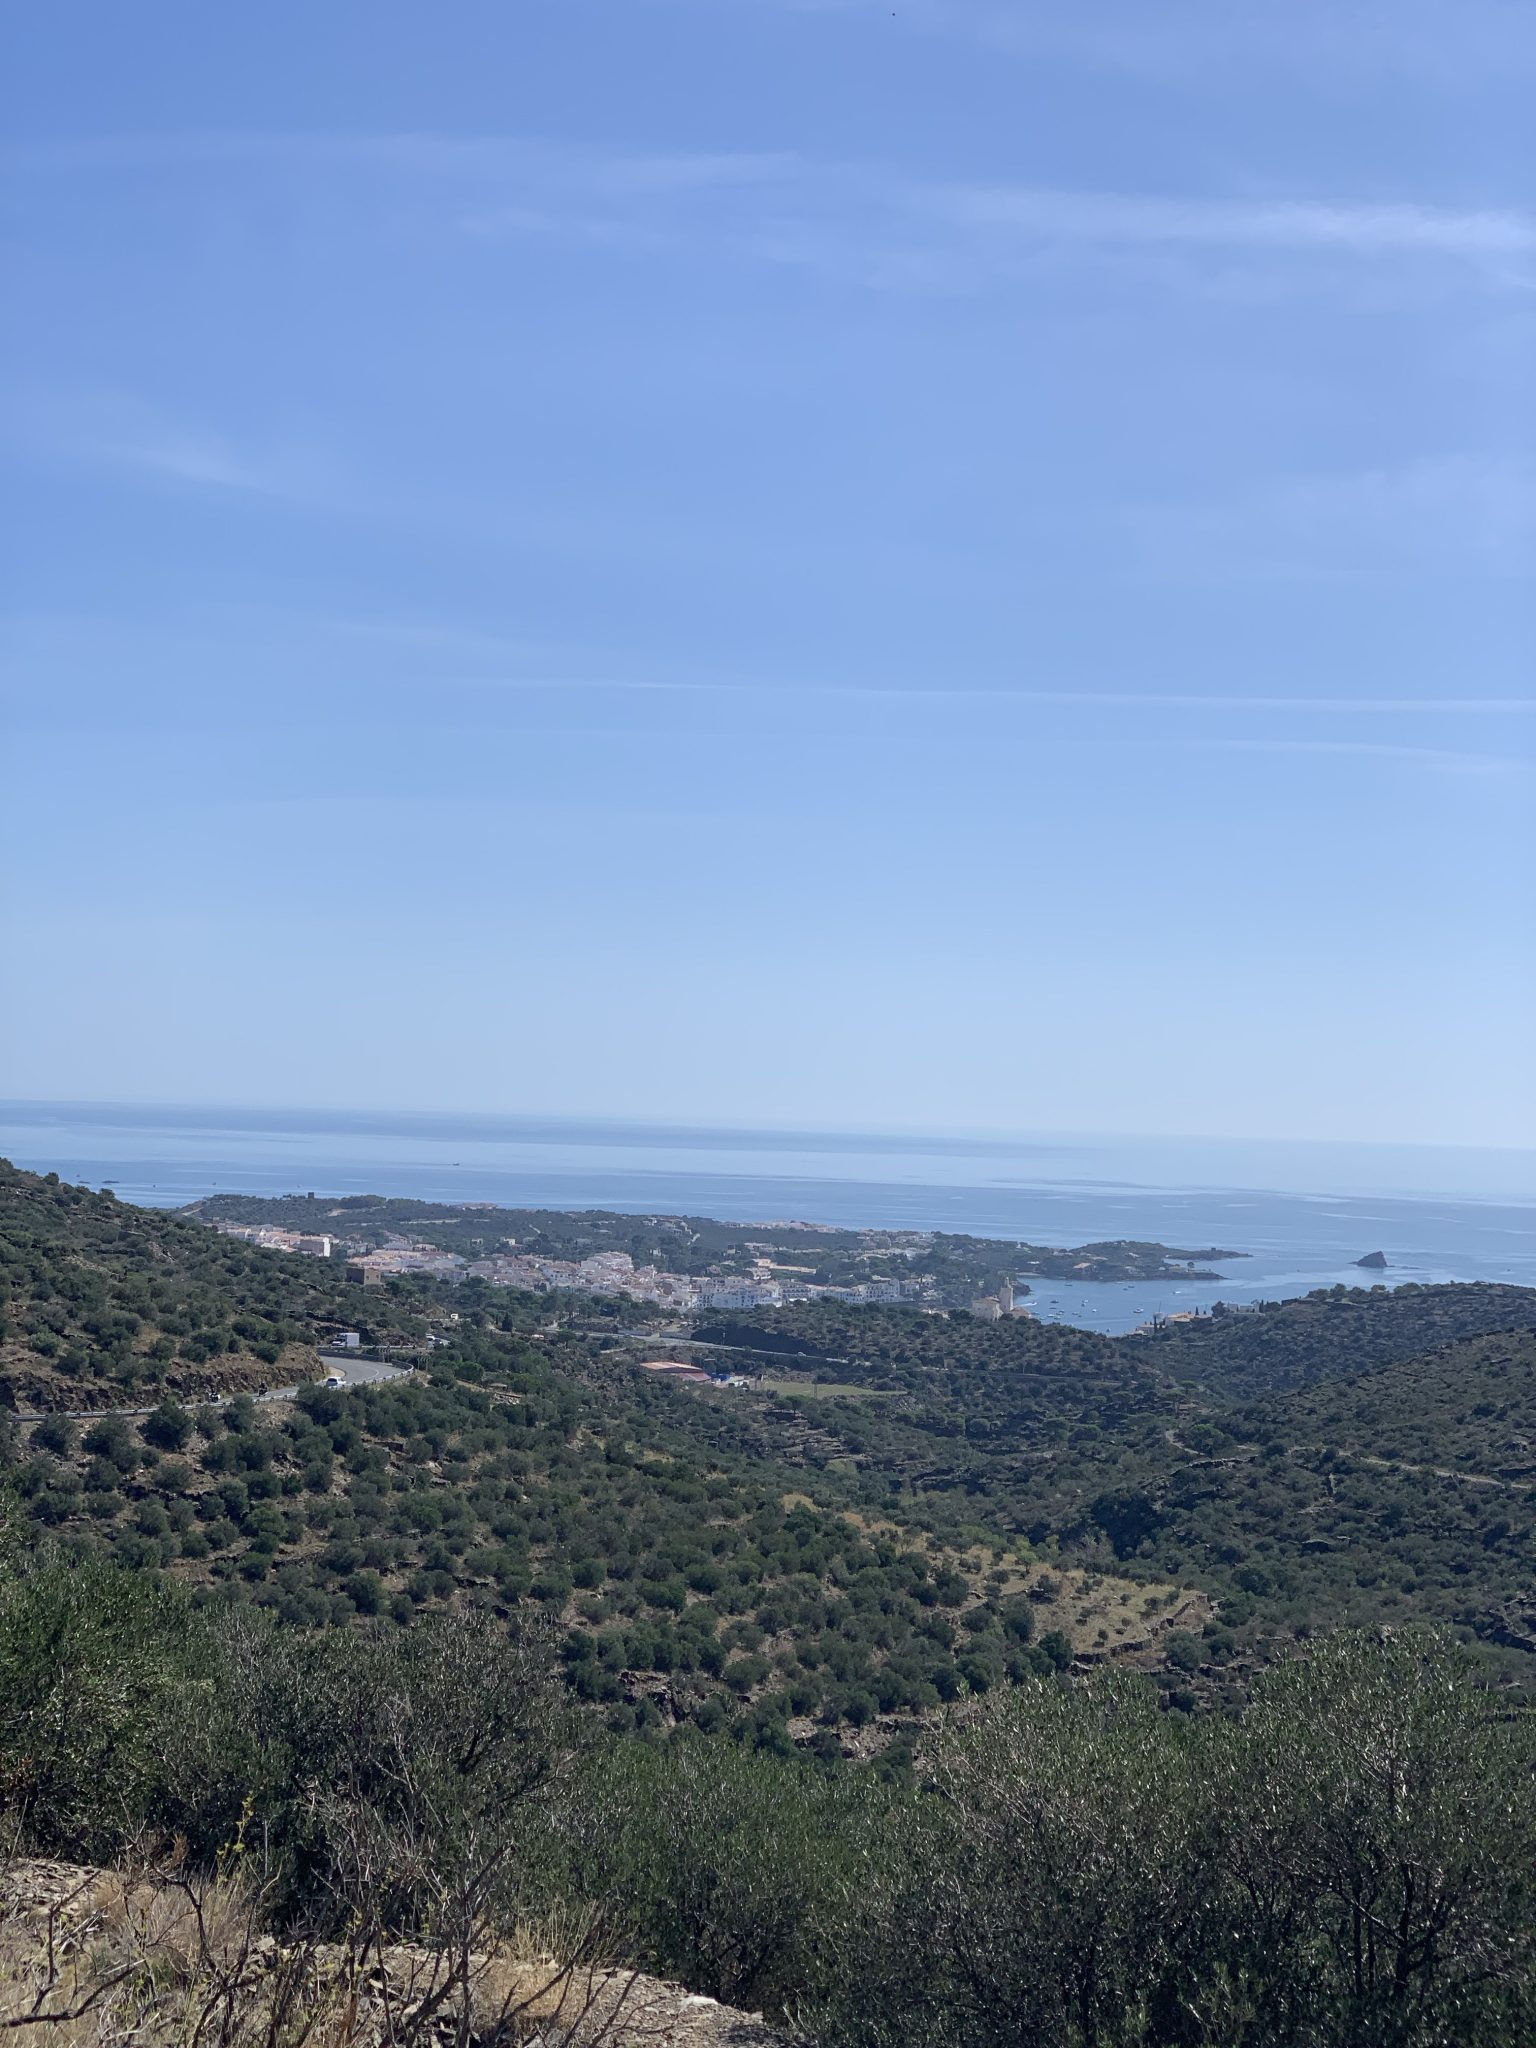 Scenic view from a mountaintop down to Cadaques and Mediterranean Sea.